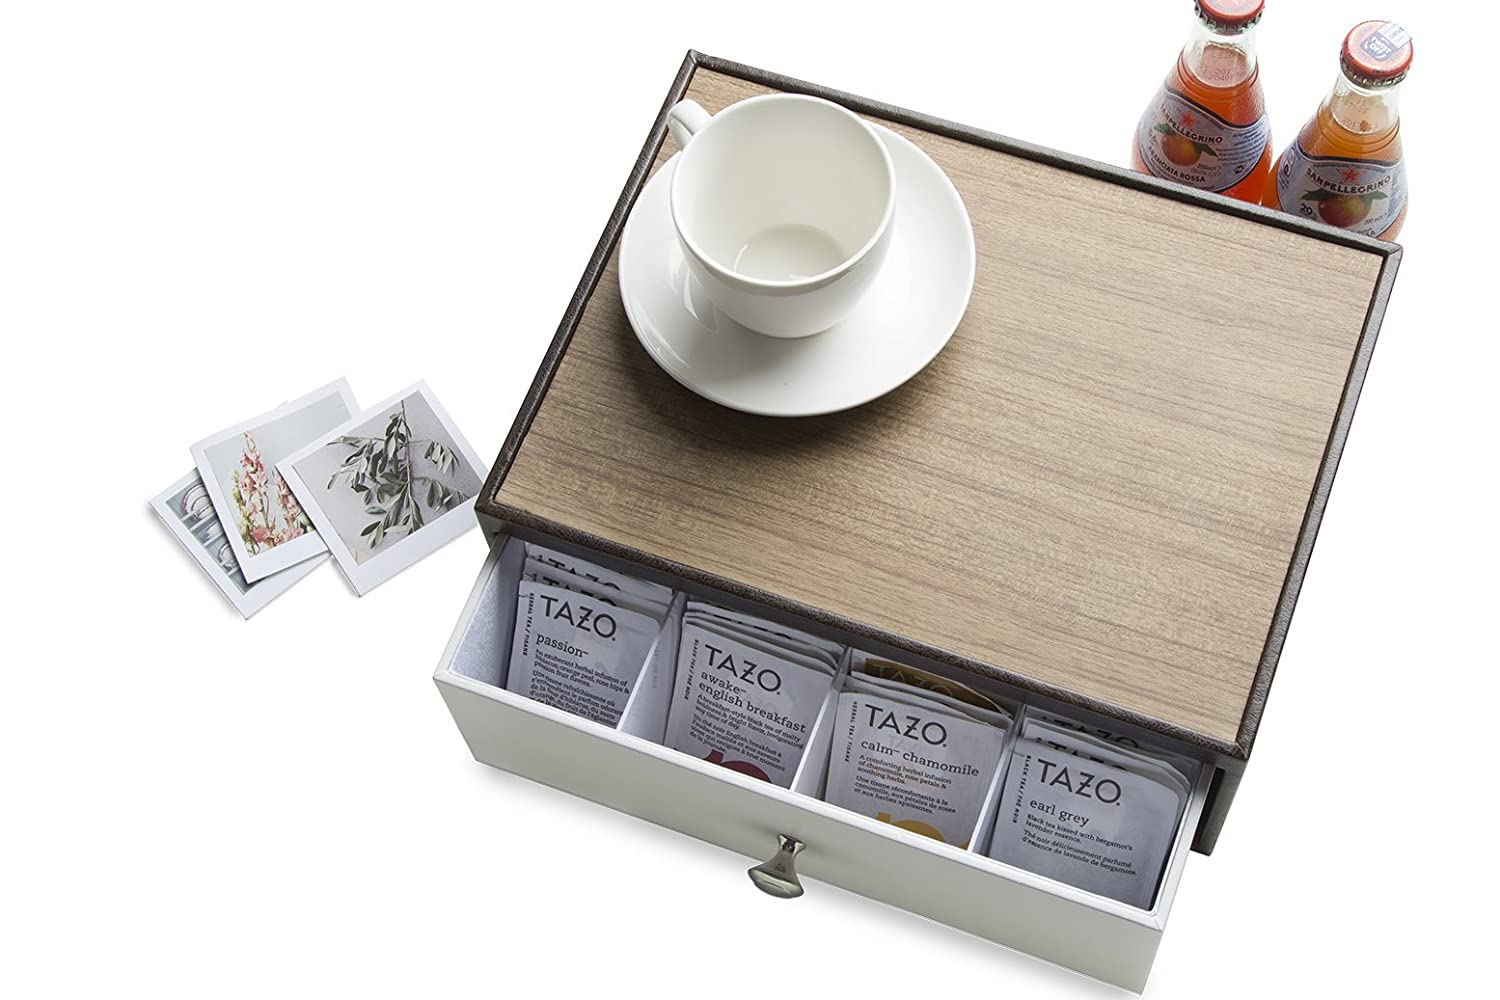 JackCubeDesign Leather Tea Box Storage Box Tea Bag Organizer Holder Tea Storage Drawer Holder with 12 Compartments(Brown/White)- :MK353A